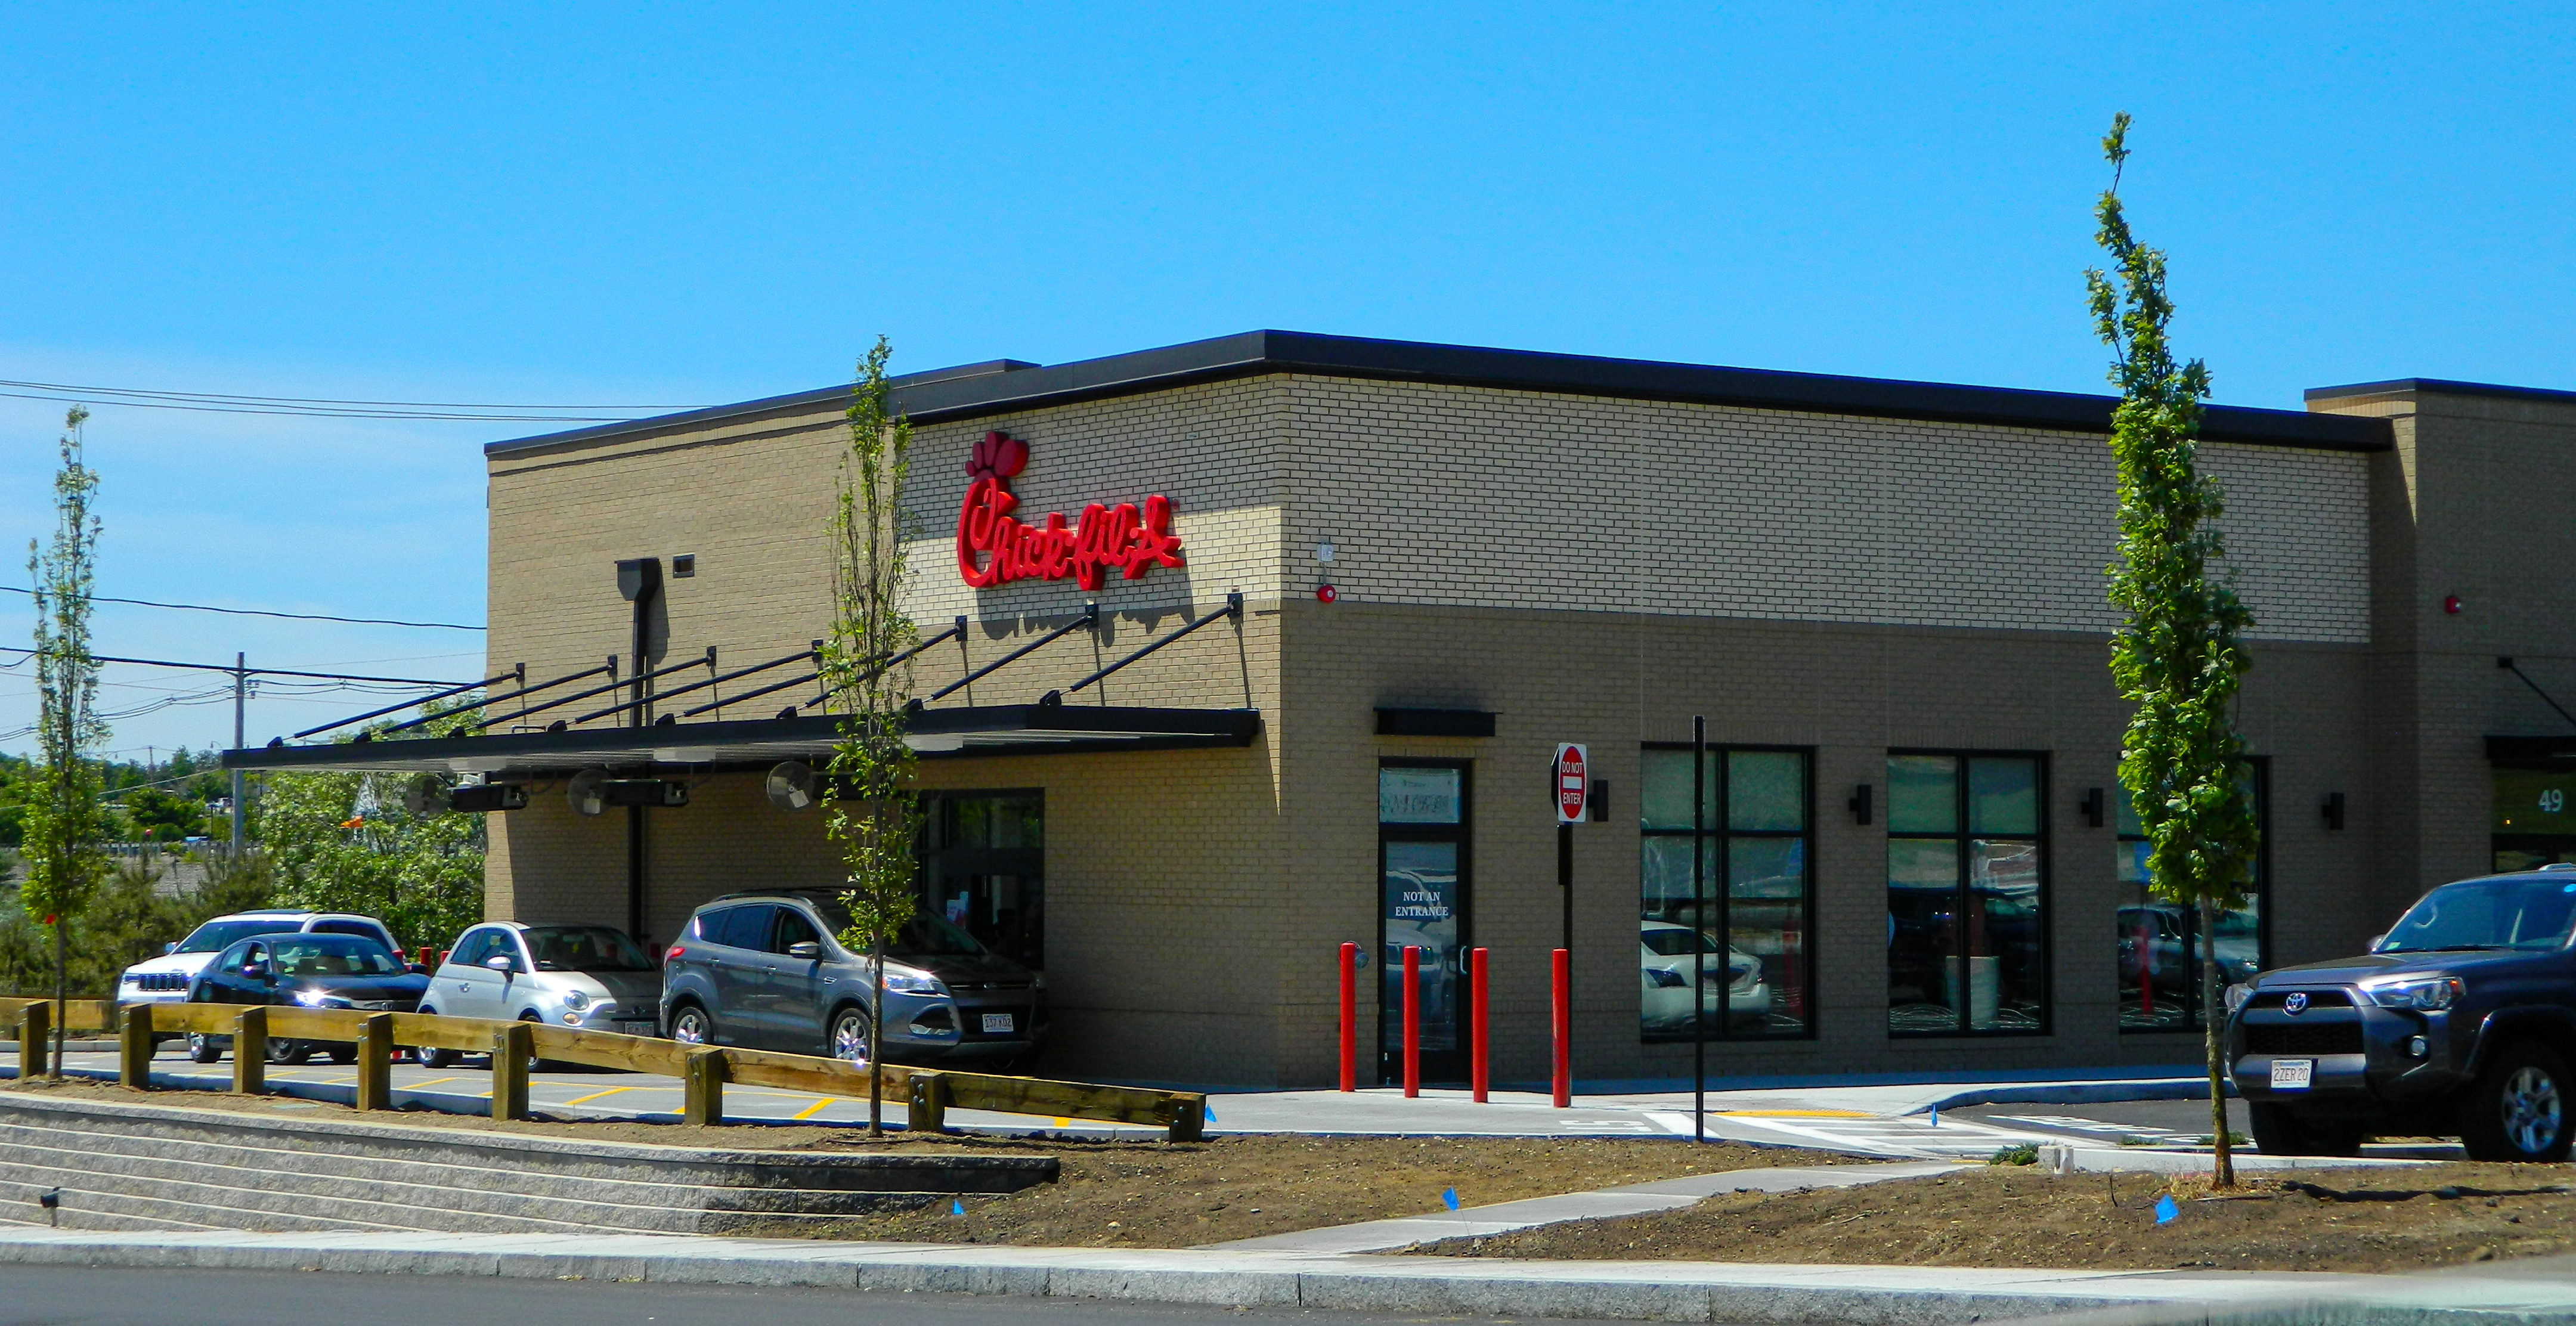 Chick-fil-A – Plymouth